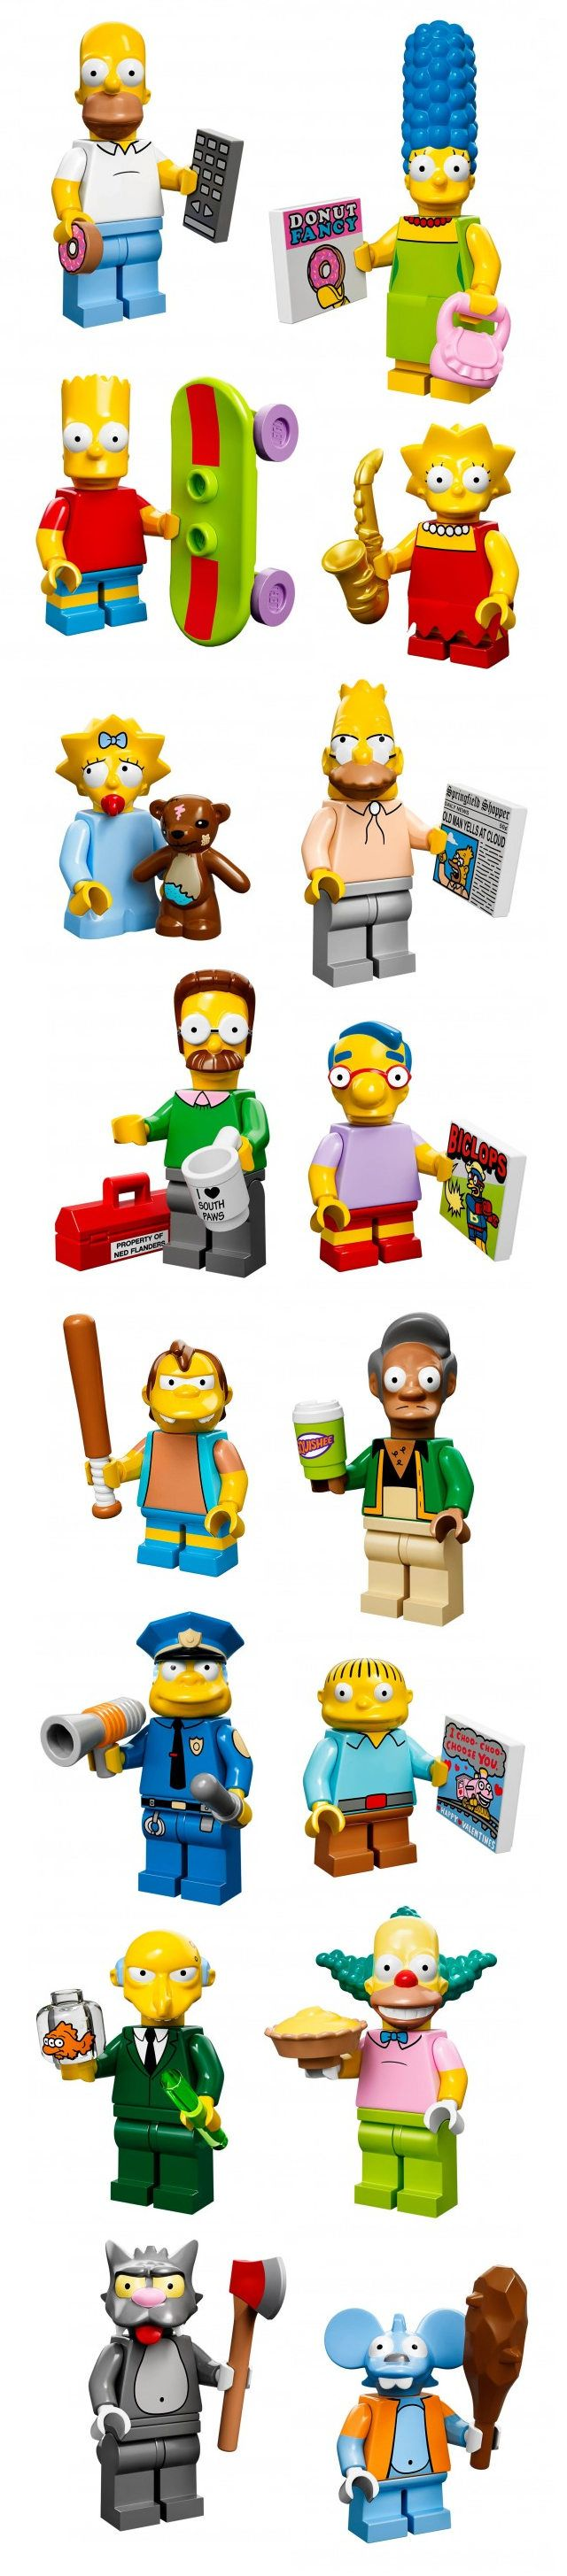 LEGO Unveils A Whole Set Of Simpsons Minifigs - Ralph Wiggum and Mr. Burns are MINE!